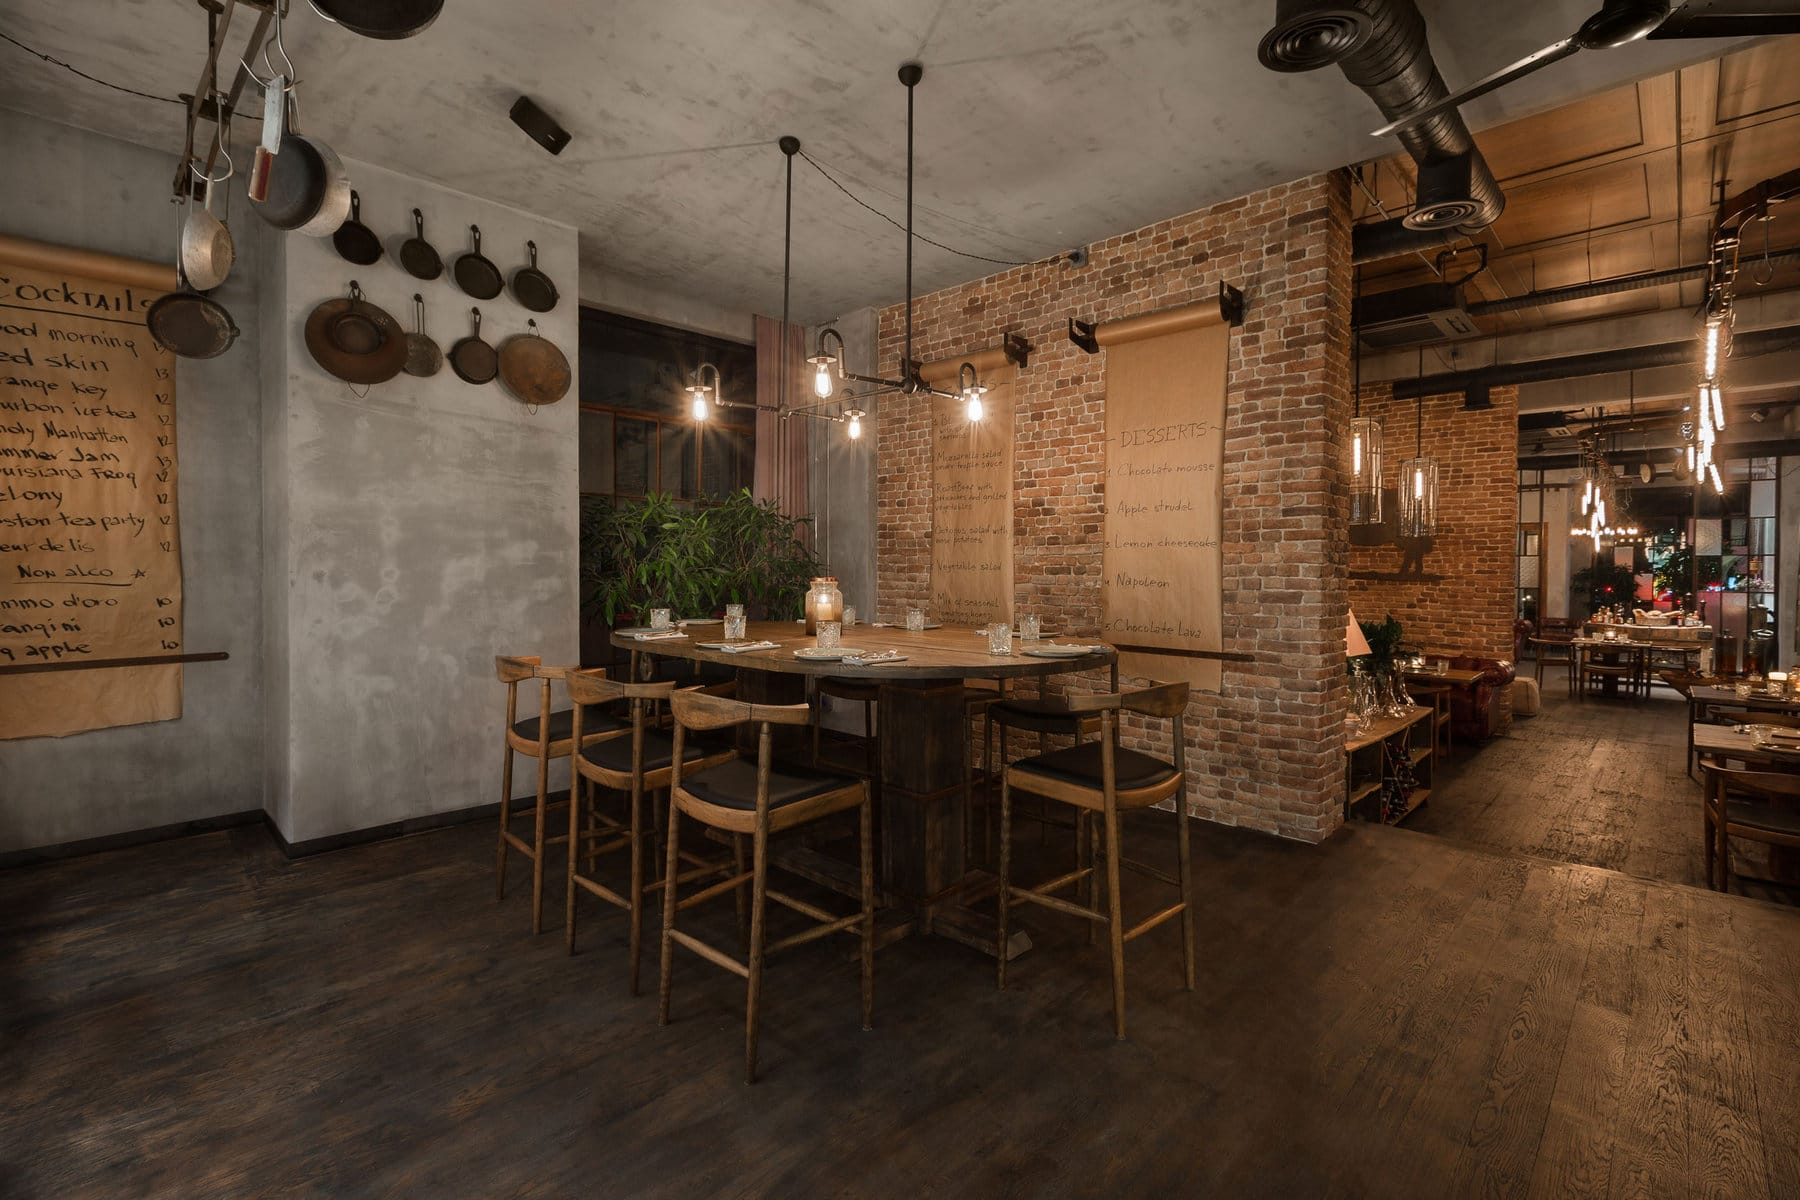 Steak House M'Eat в Баку от студии Беленко, HQ architecture, HQarch, HQ arch, high quality architecture